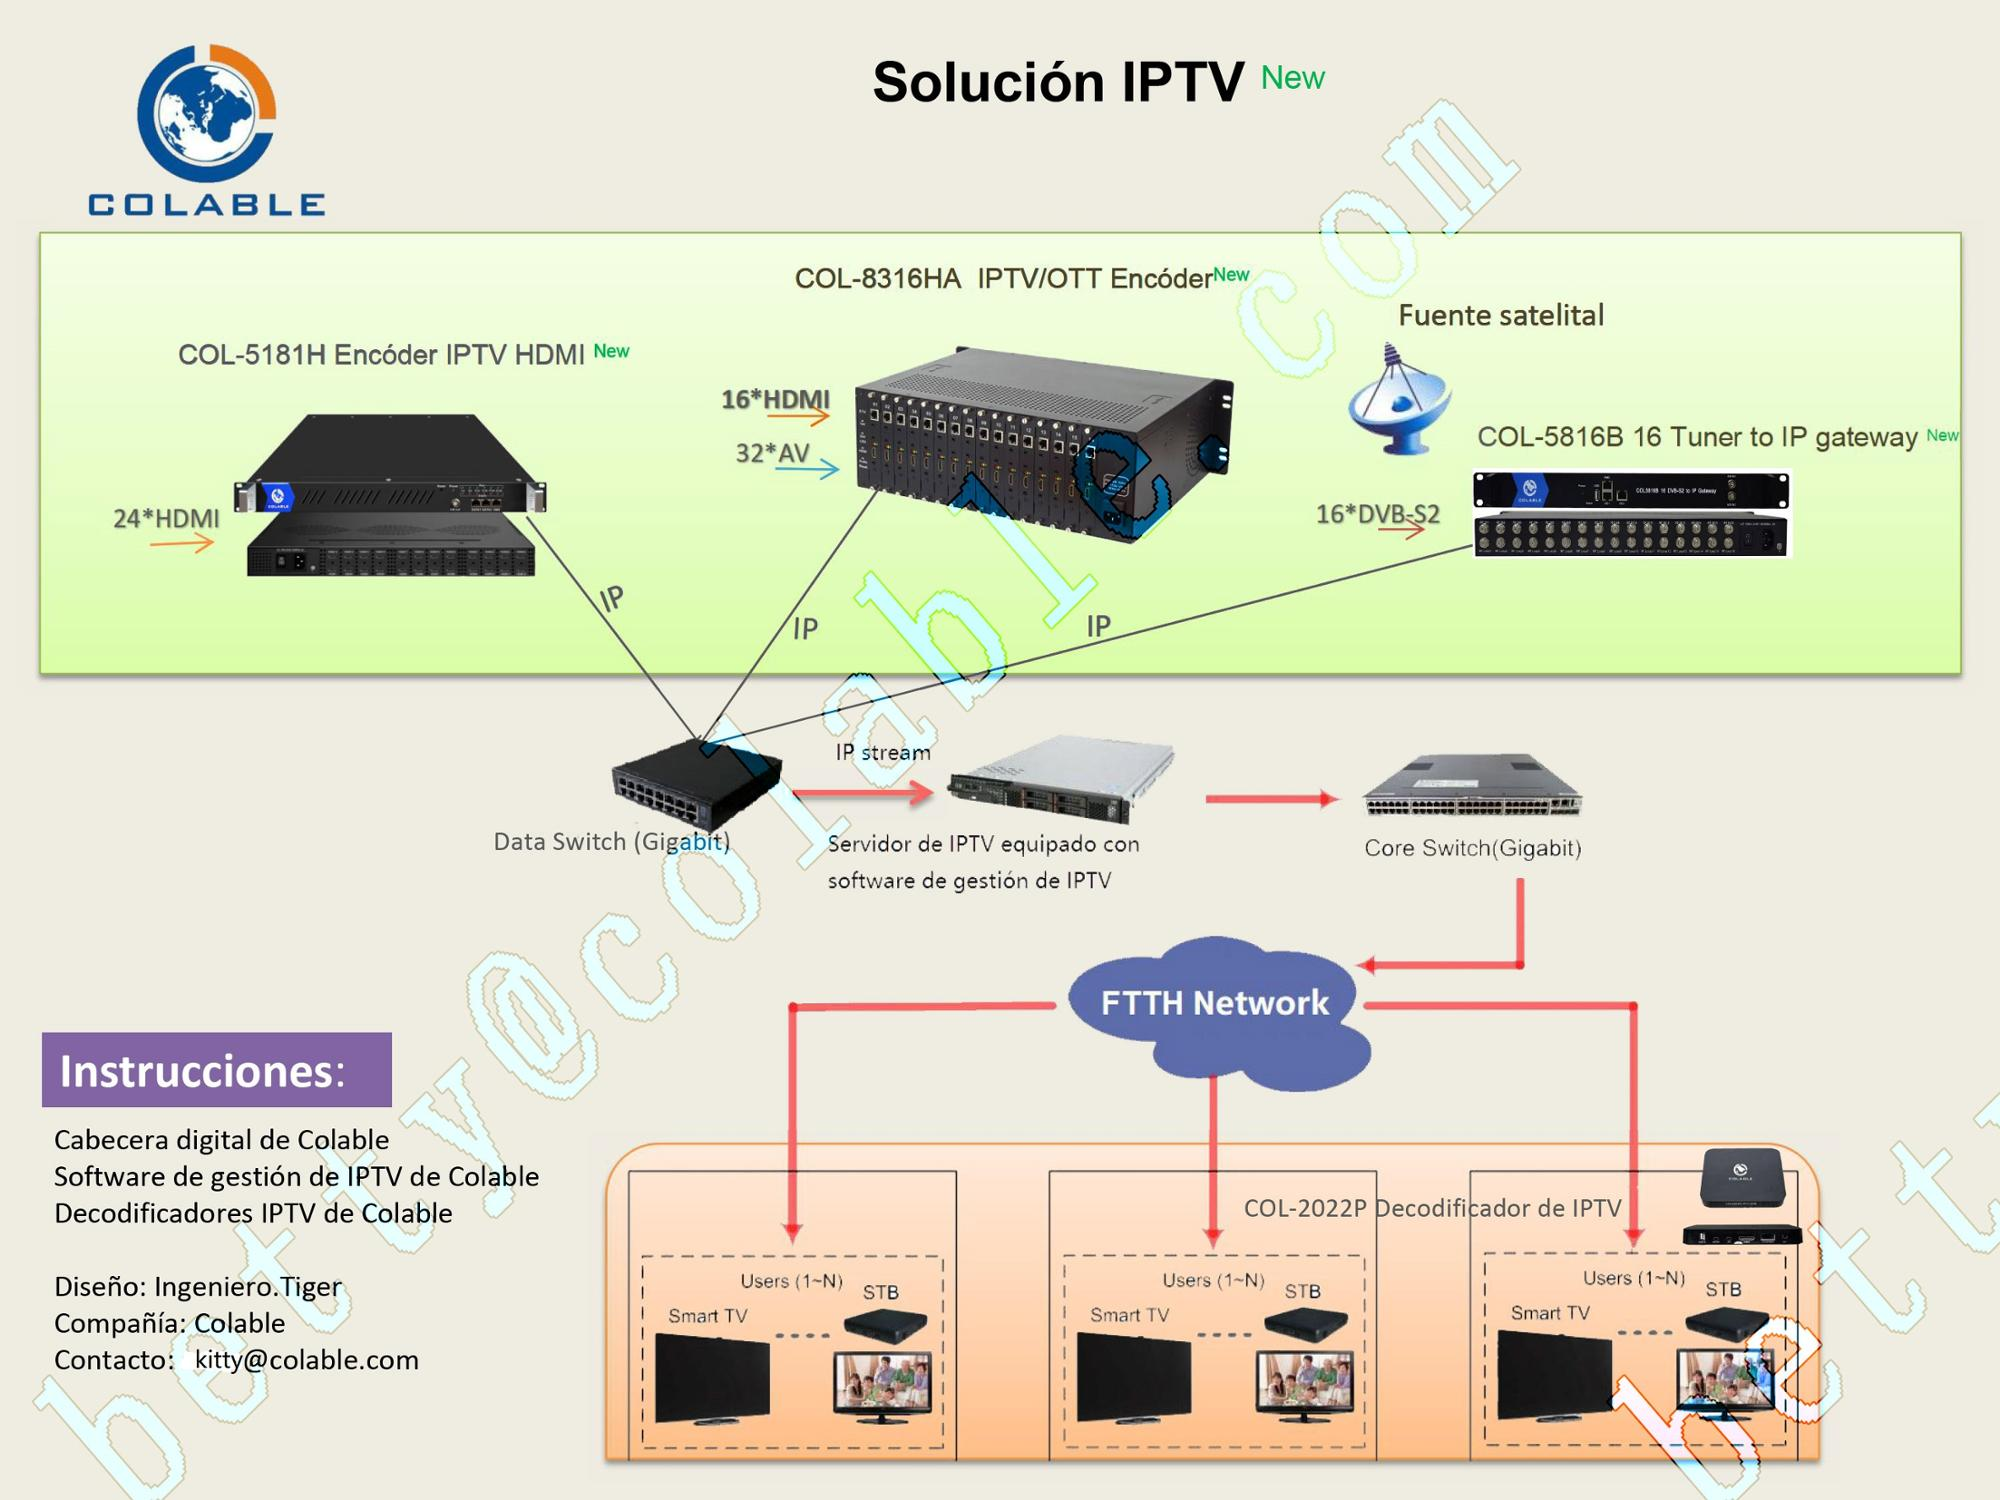 Iptv 16 Channels Hd Video Input Solution Ip Http Rtmp Udp Ip Stream Encoder  Provider Colable In Chengdu - Buy Iptv Solution,Iptv Headend Encoder,16